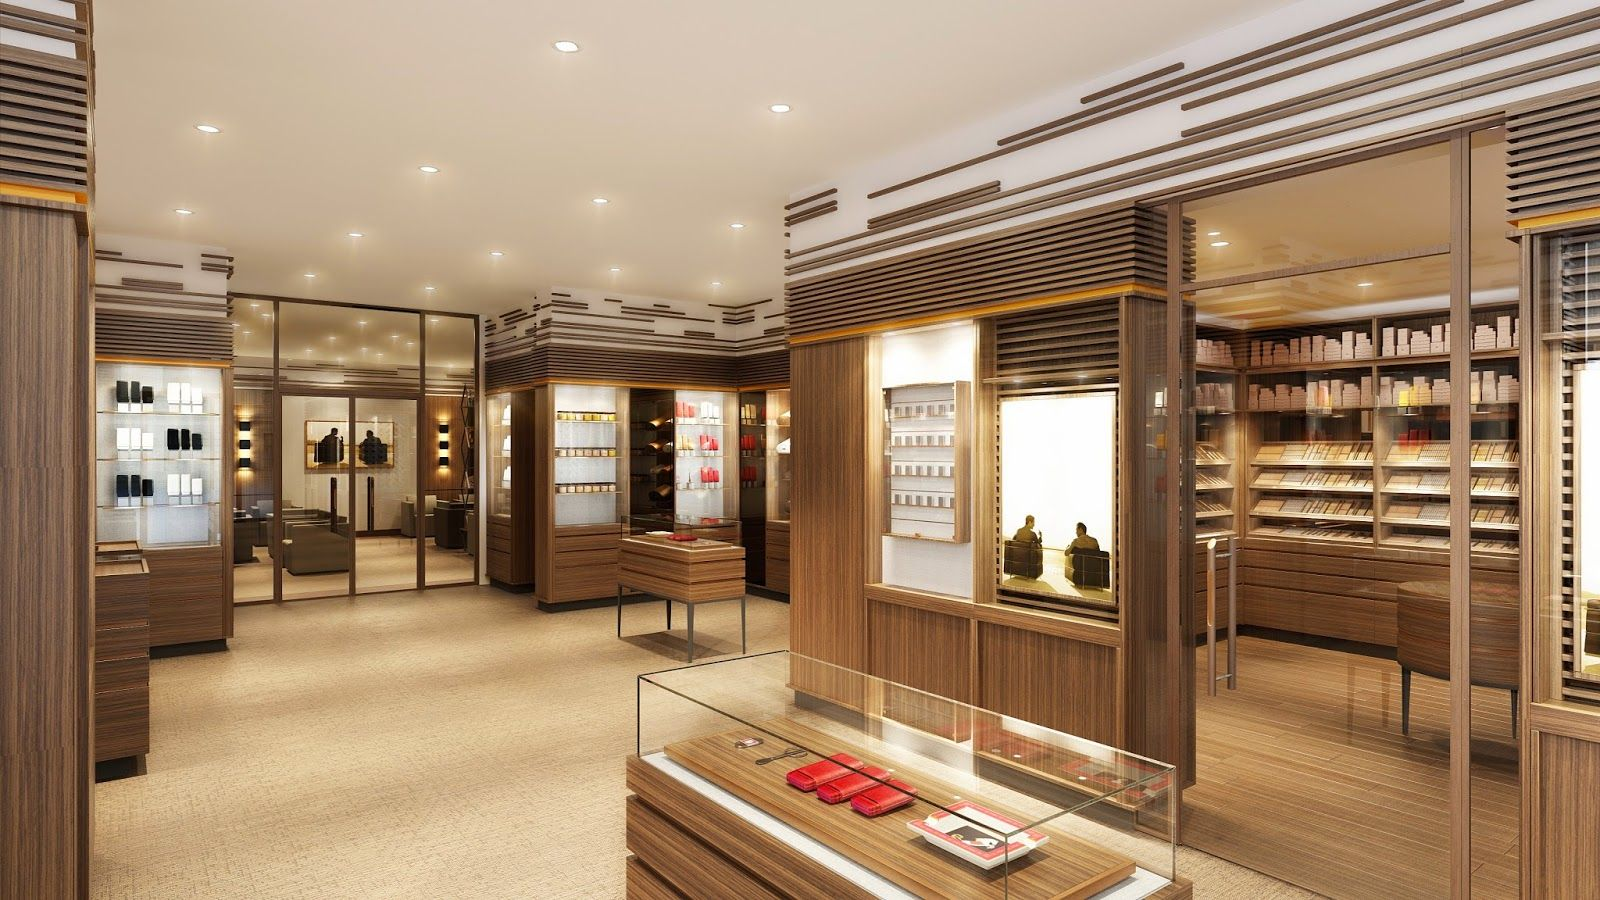 Pin by Winnie Shum on Retail | Cigar store, House styles, Cigars